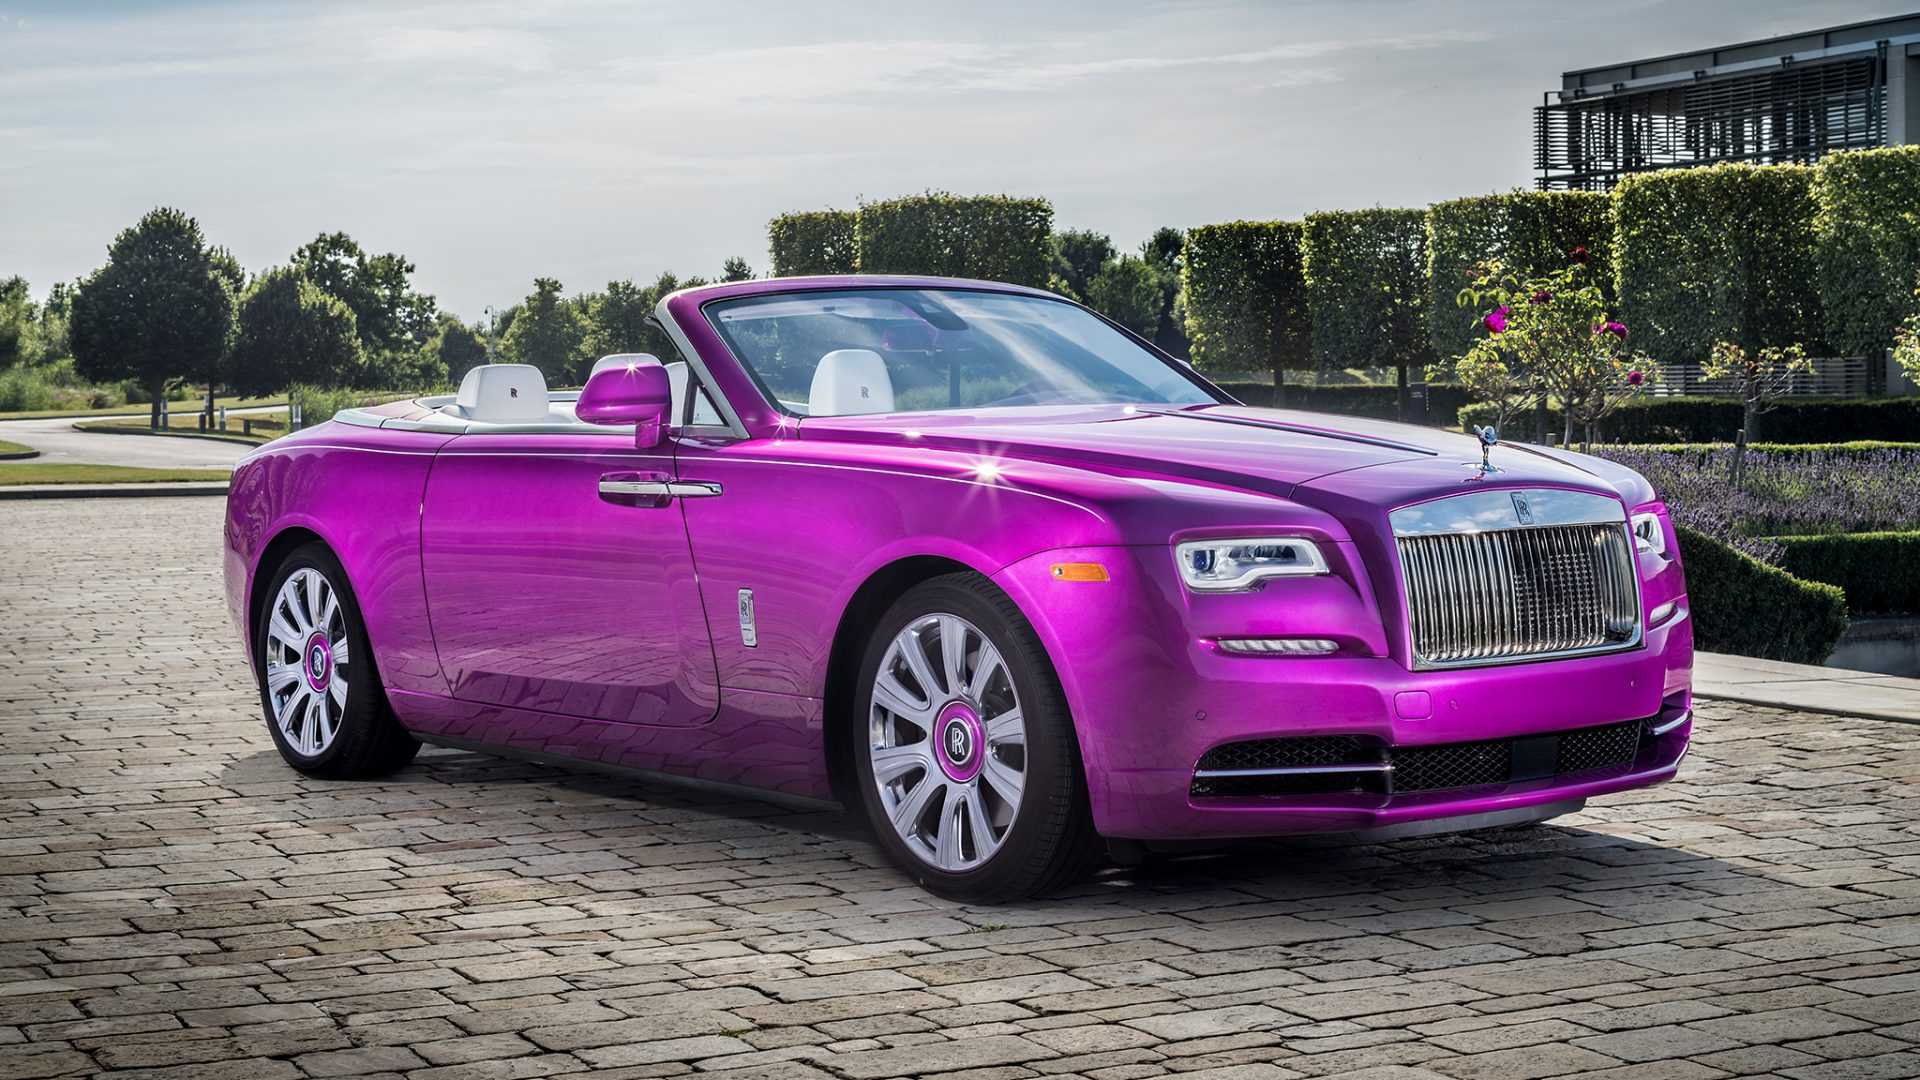 Fux Fuxia Dawn Rolls Royce - The Luxe Diary's Valentine's Gift List